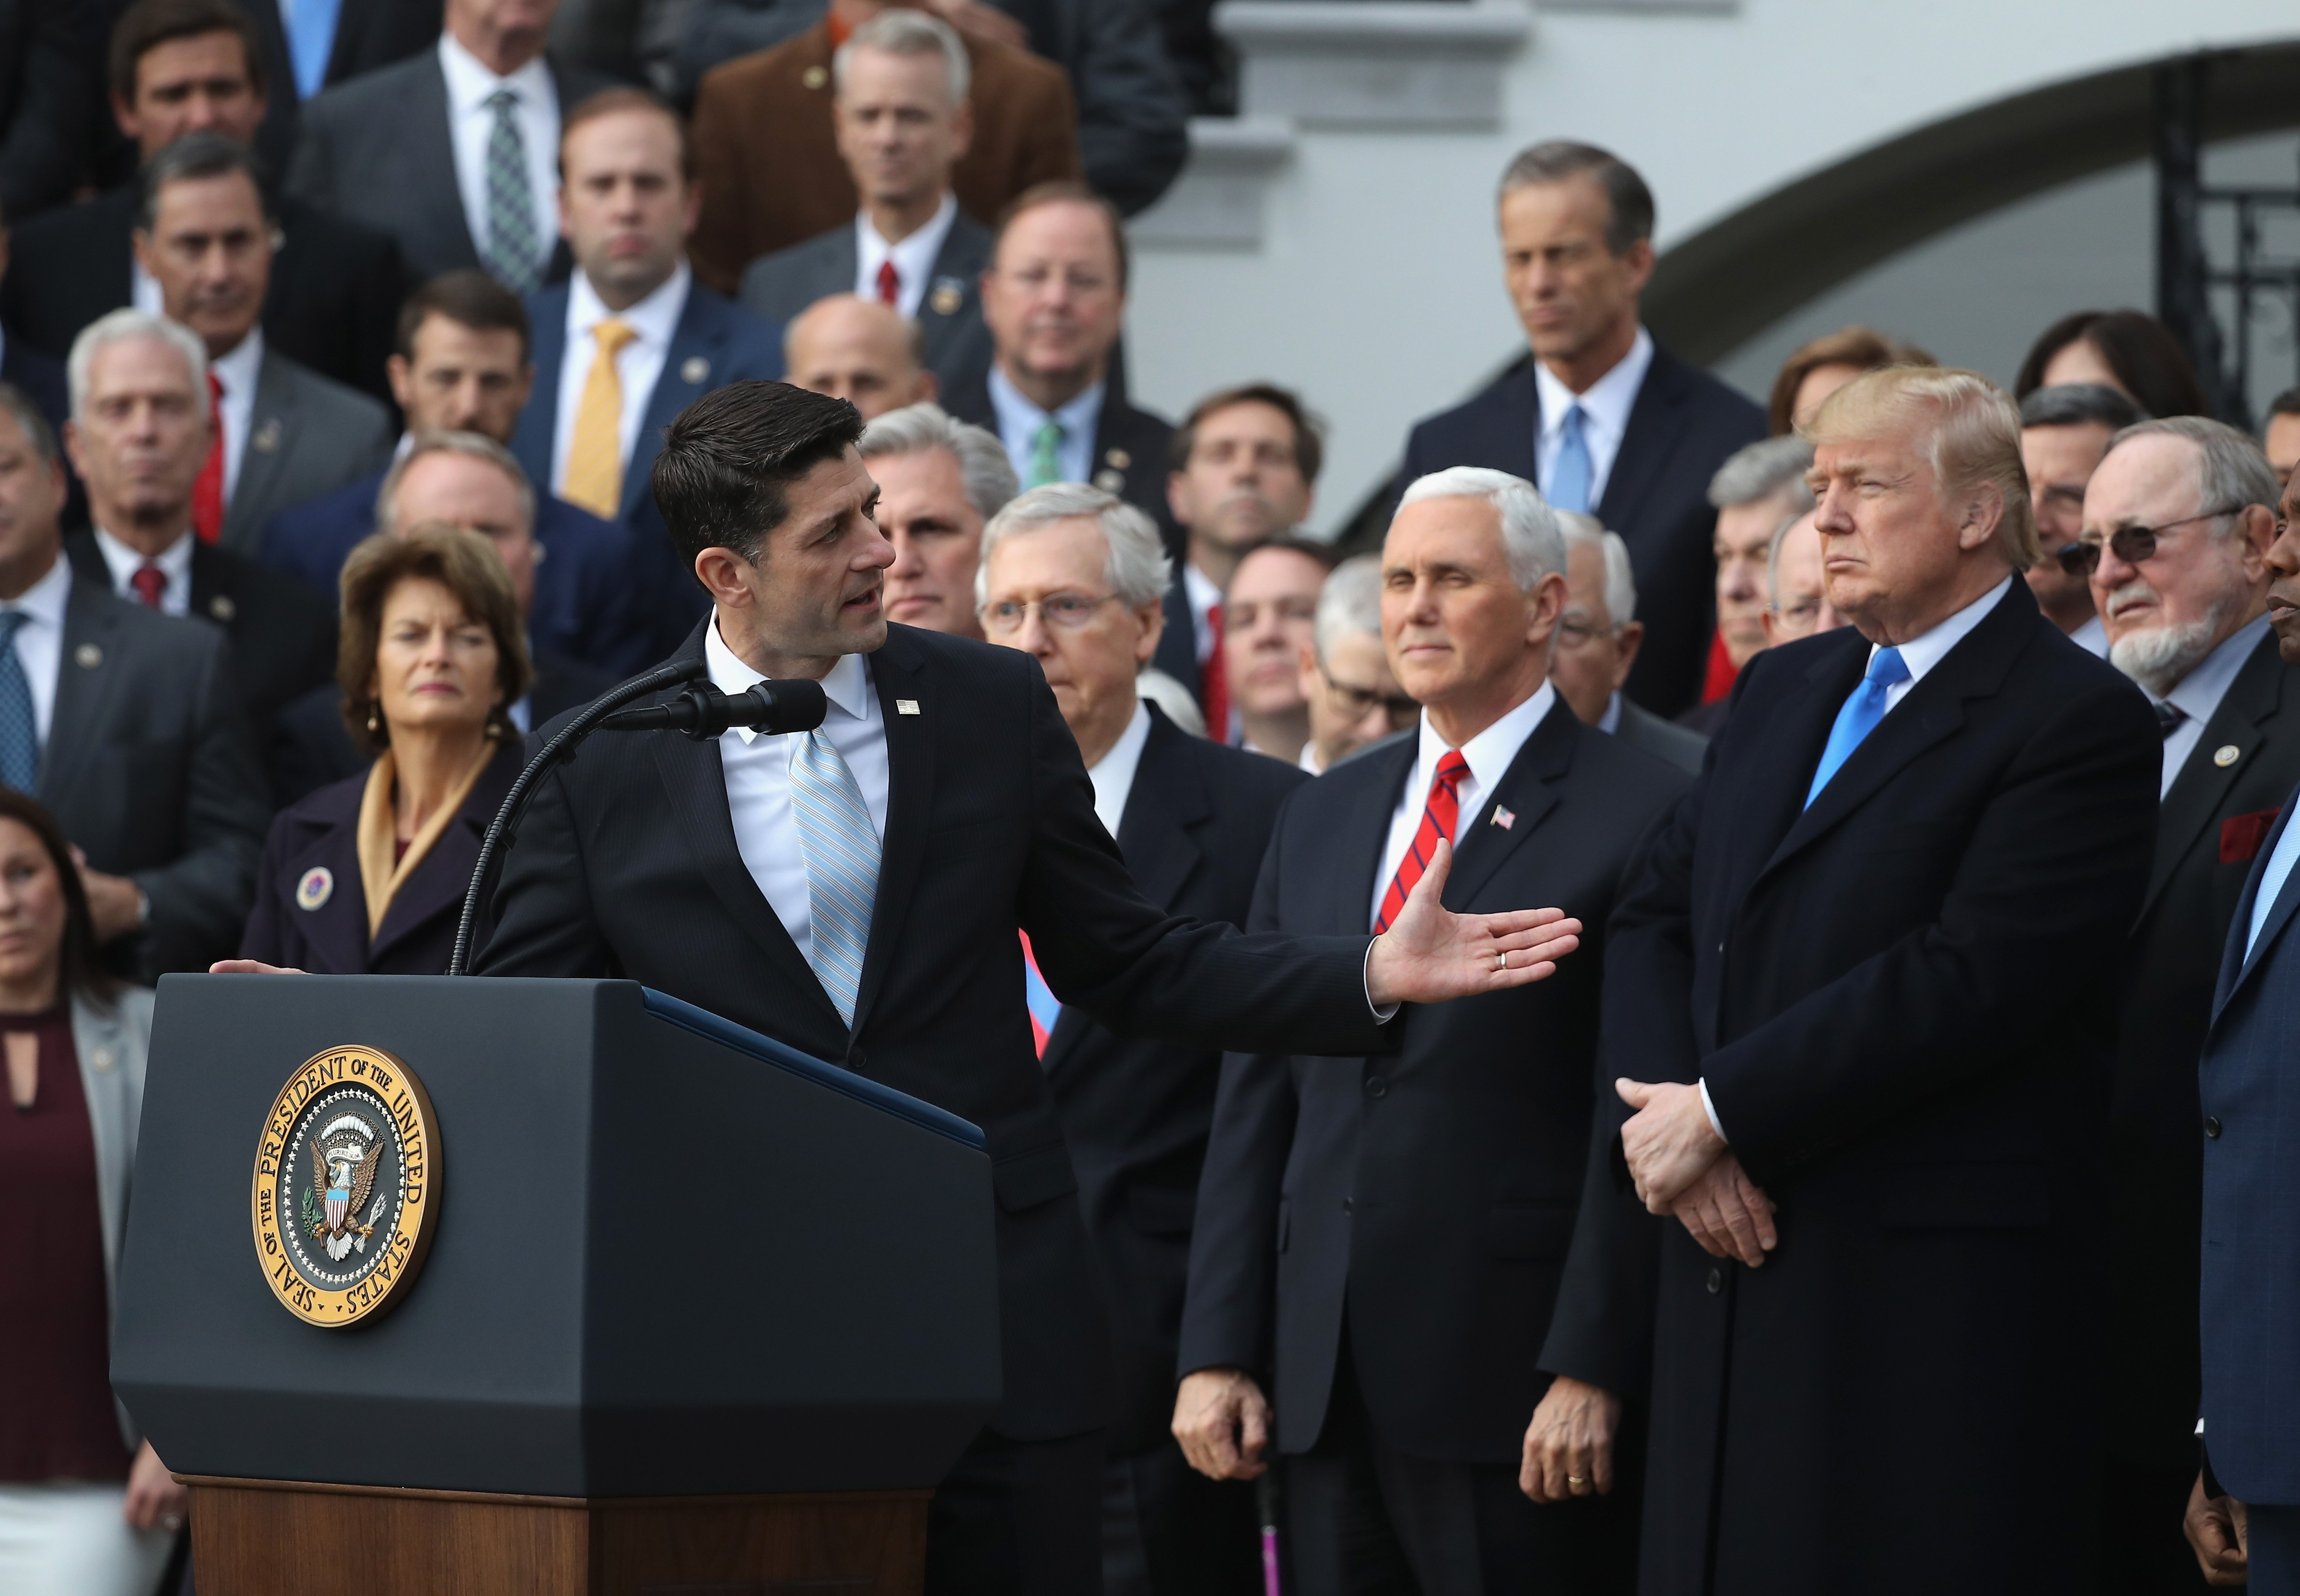 U.S. House Speaker Paul Ryan gestures to President Donald Trump, flanked by Republican lawmakers, at a celebration of Congress passing the Tax Cuts and Jobs Act on the South Lawn of the White House on December 20, 2017 in Washington, DC. (Photo by Chip Somodevilla/Getty Images)